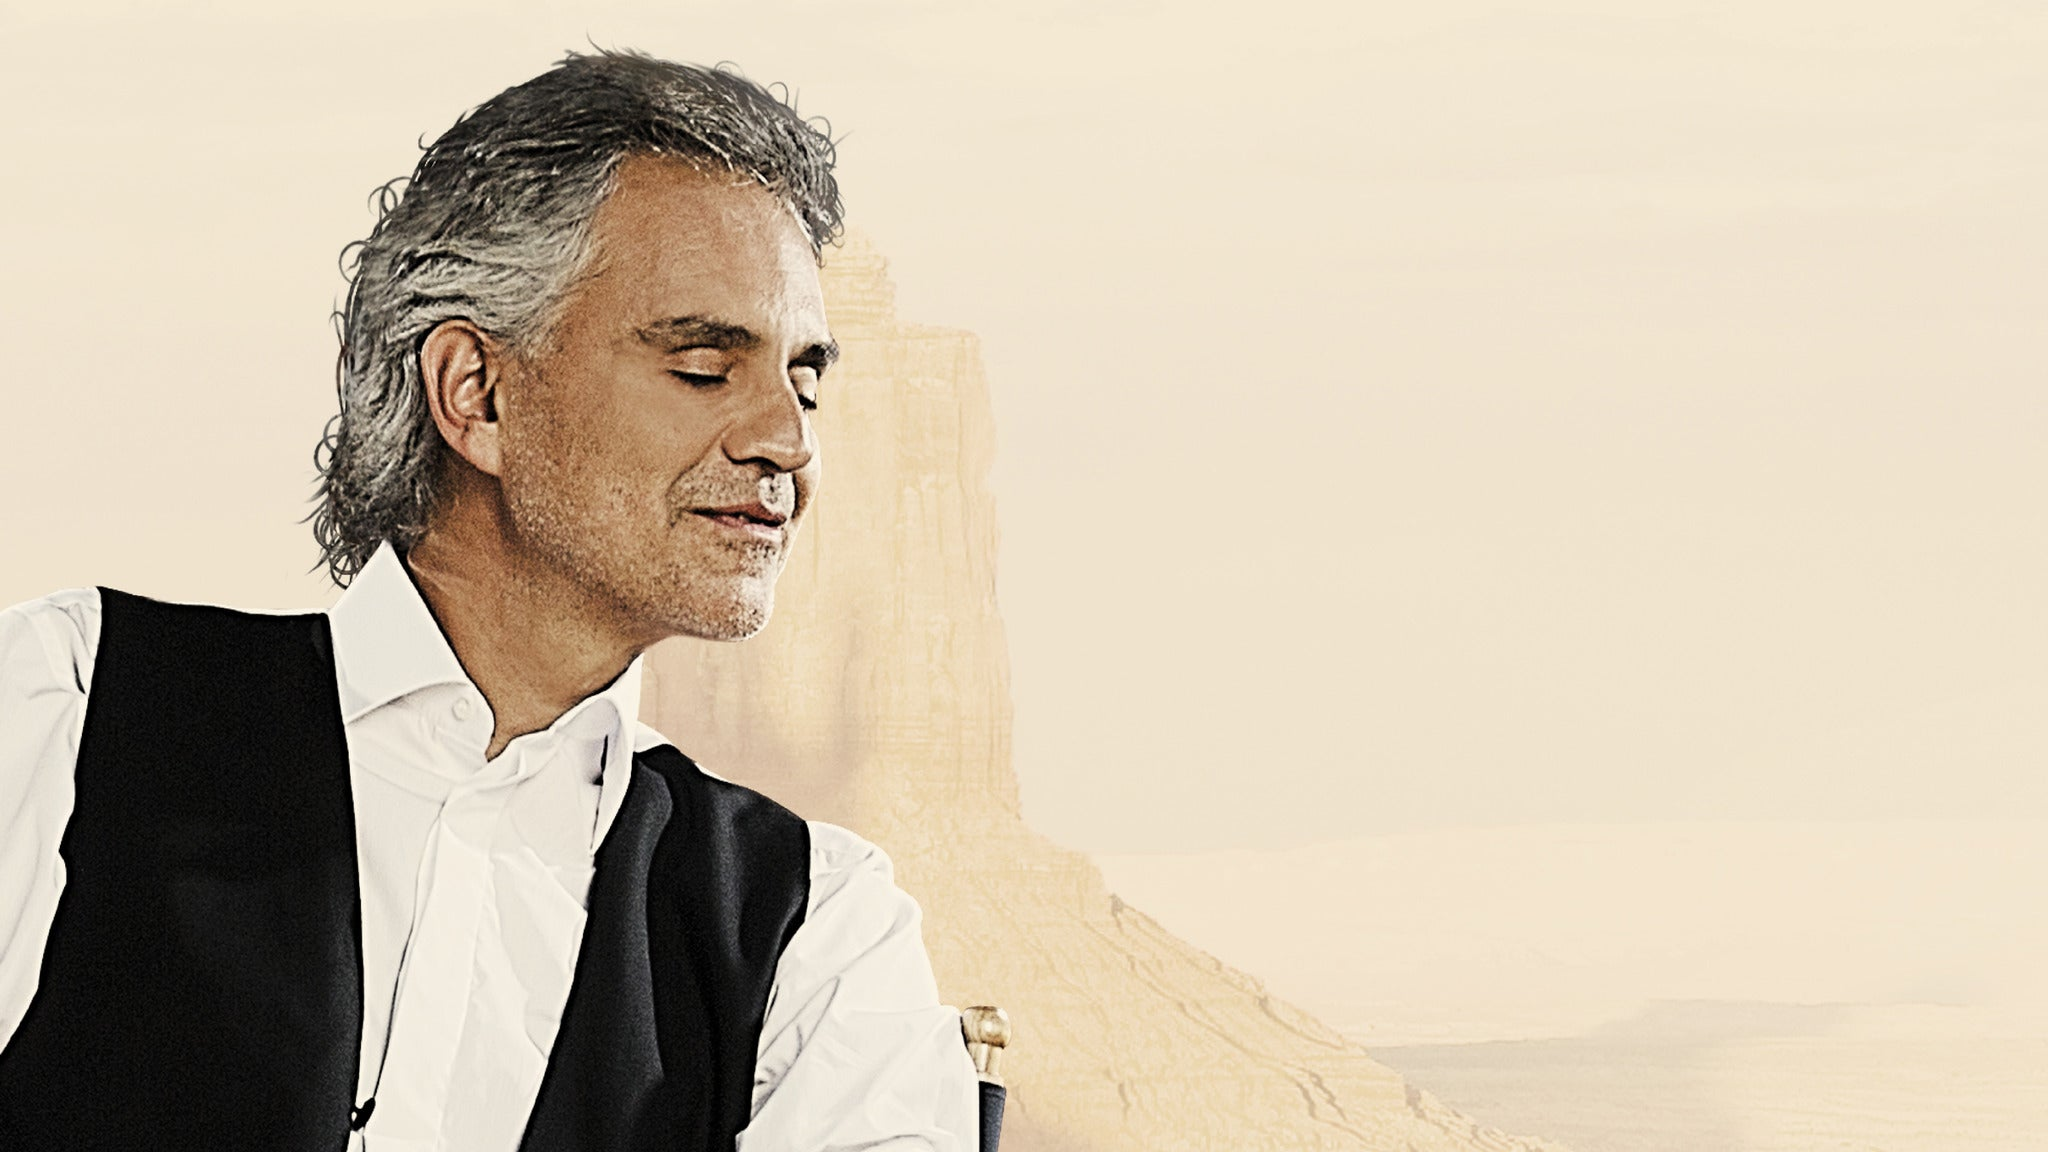 Andrea Bocelli at BB&T Center - Sunrise, FL 33323